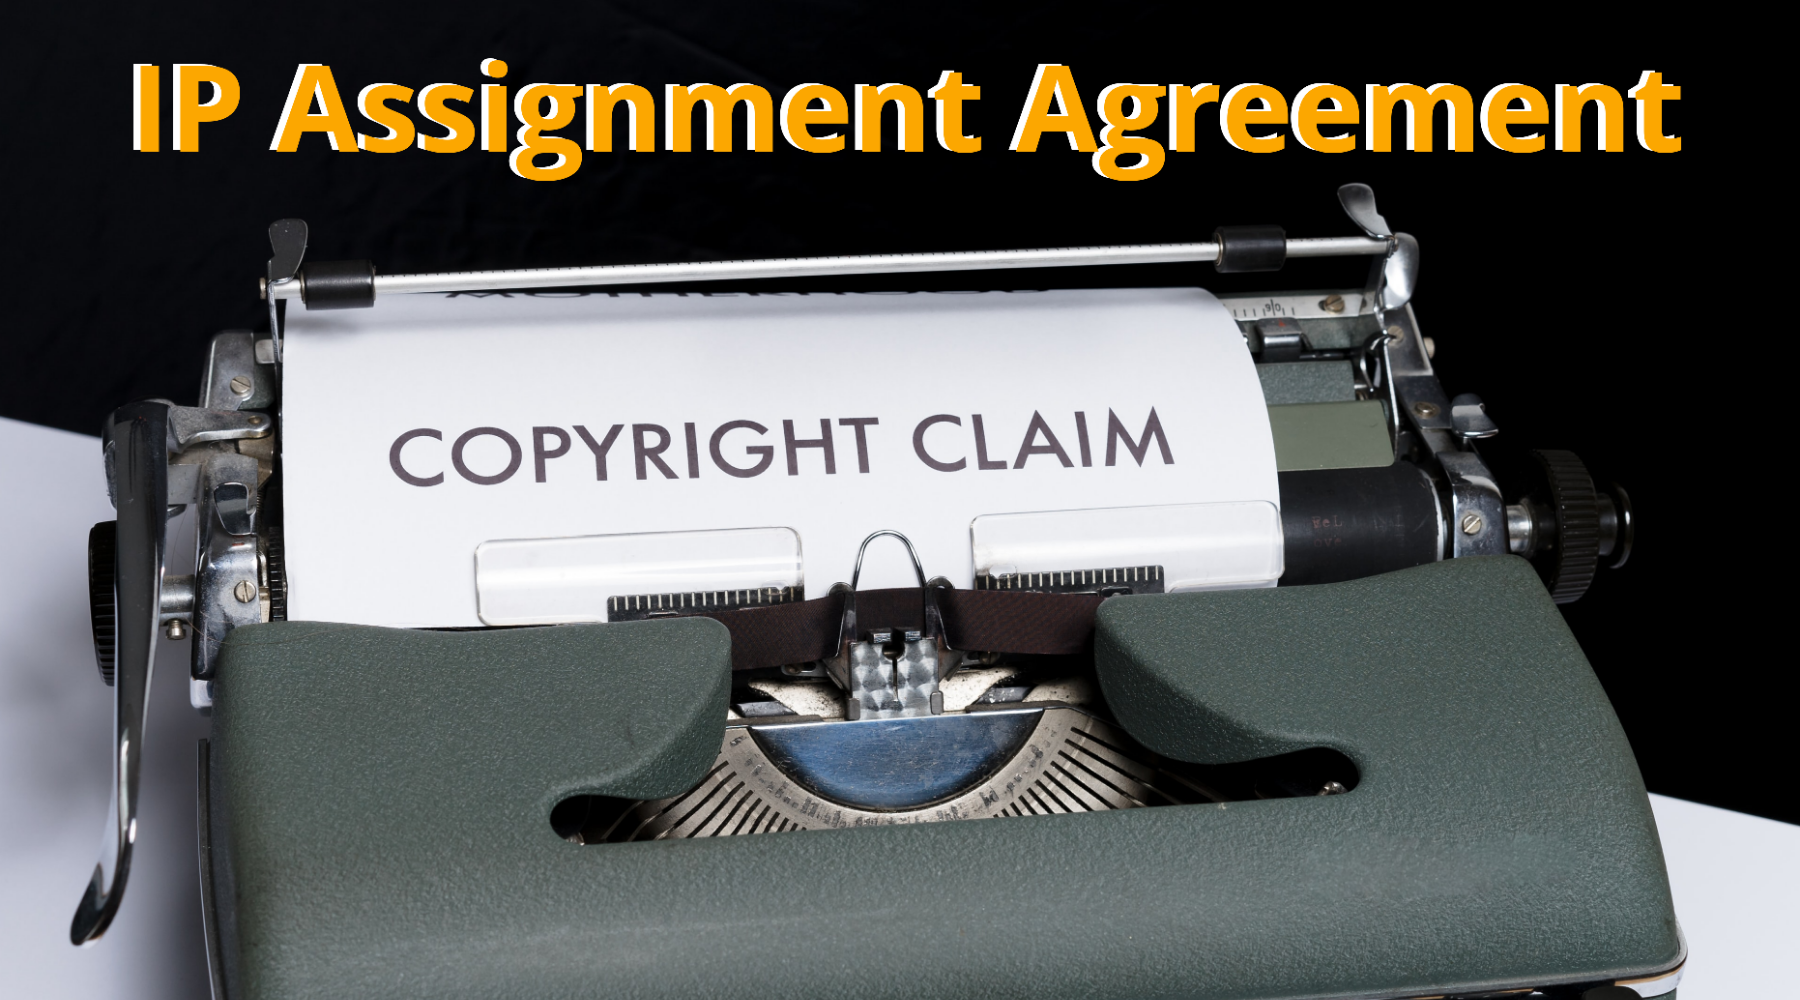 What is IP Assignment Agreement and Why is it Crucial for Every Business